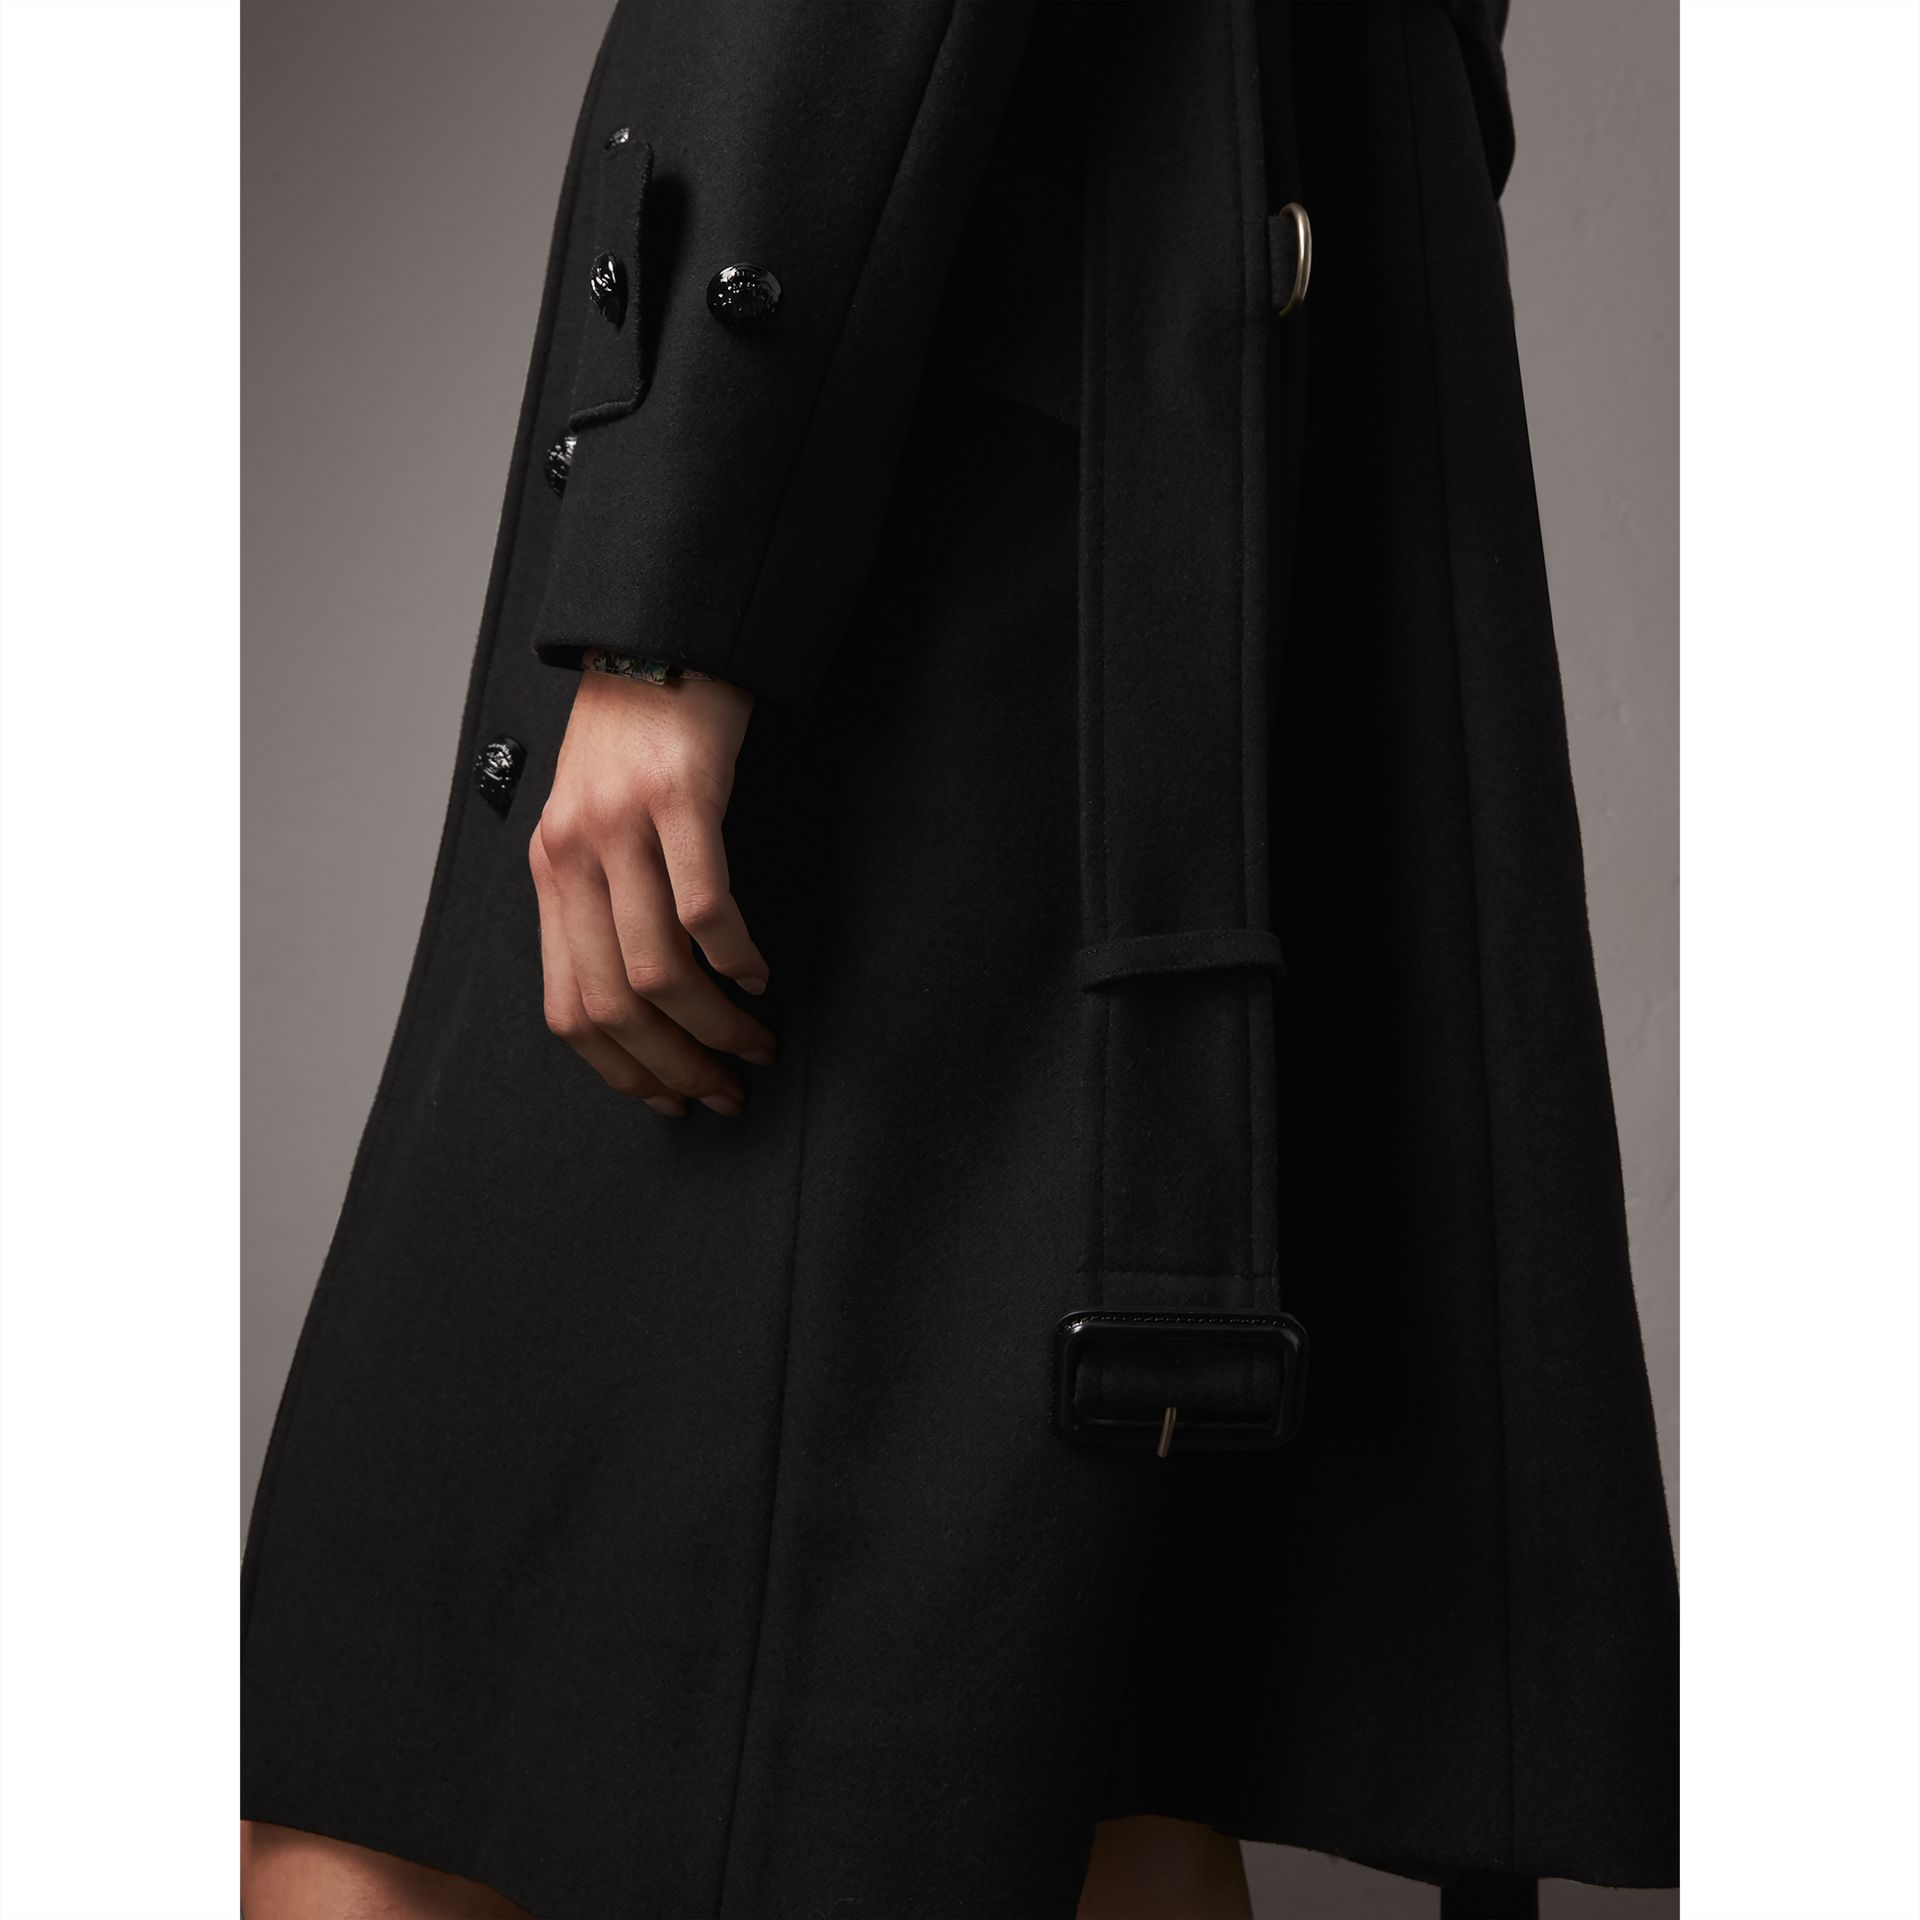 Hooded Wool Blend Coat with Detachable Fur Trim in Black - Women | Burberry United States - gallery image 2